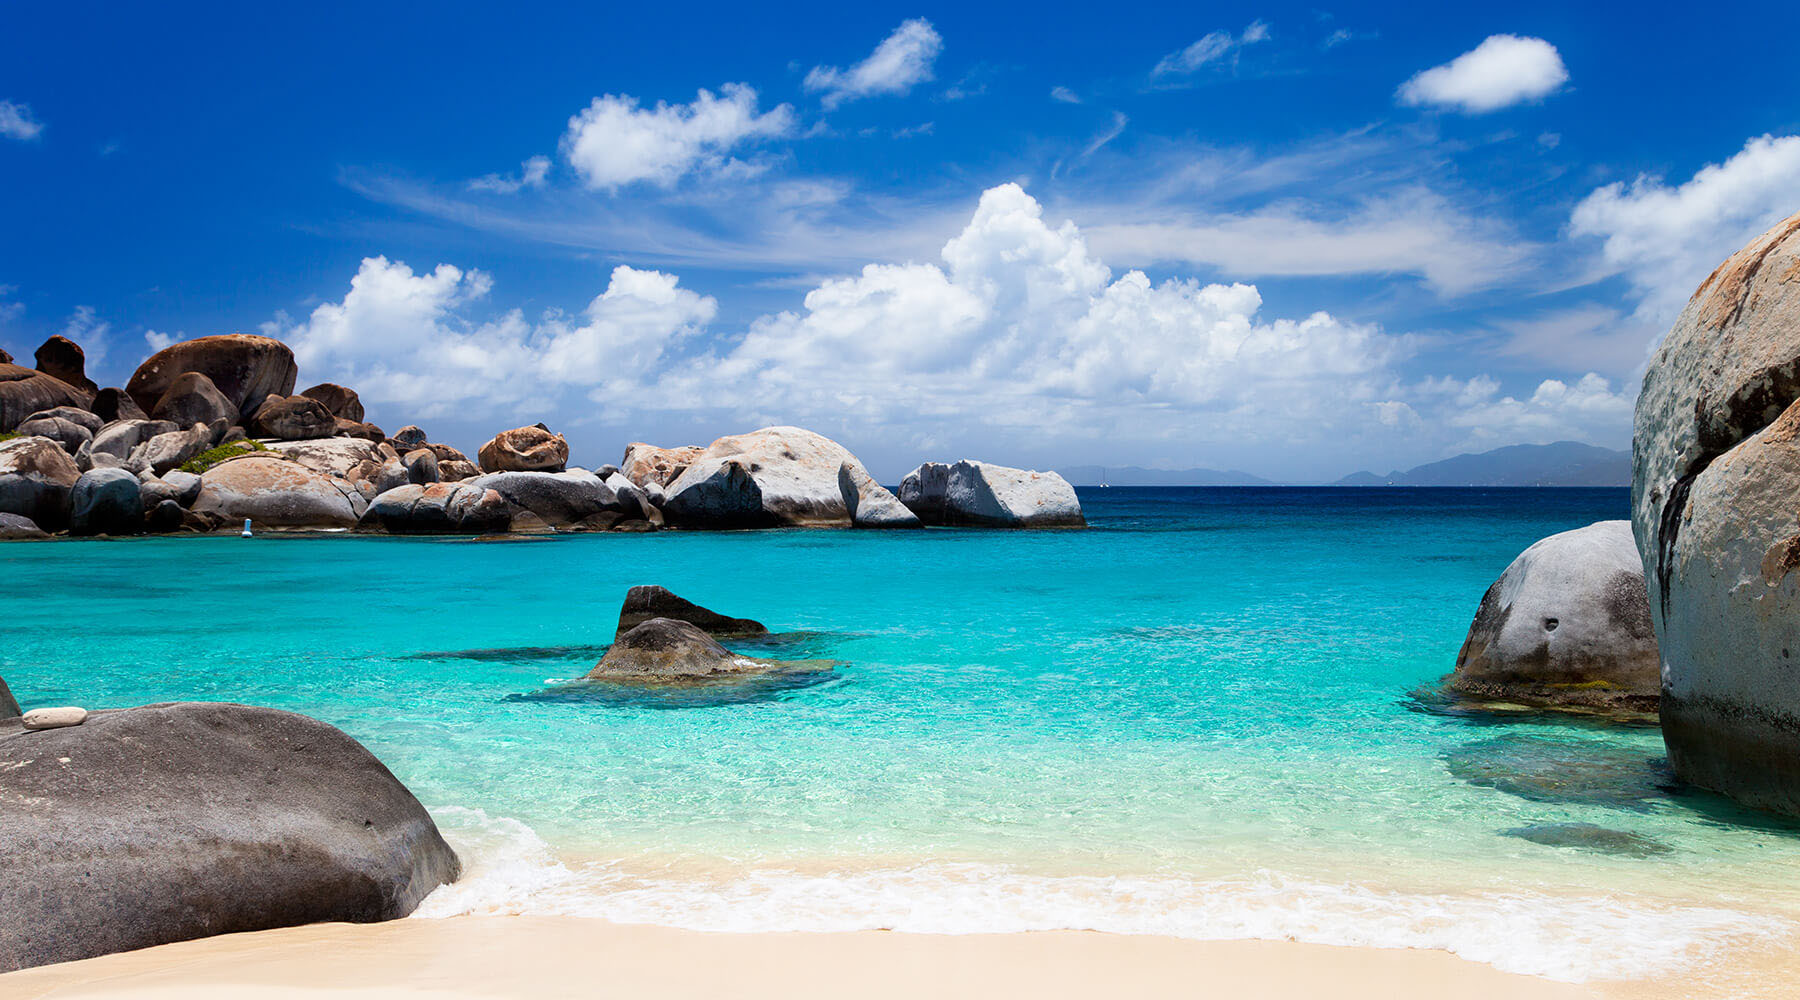 13 NIGHT CARIBBEAN HOLIDAY VOYAGE